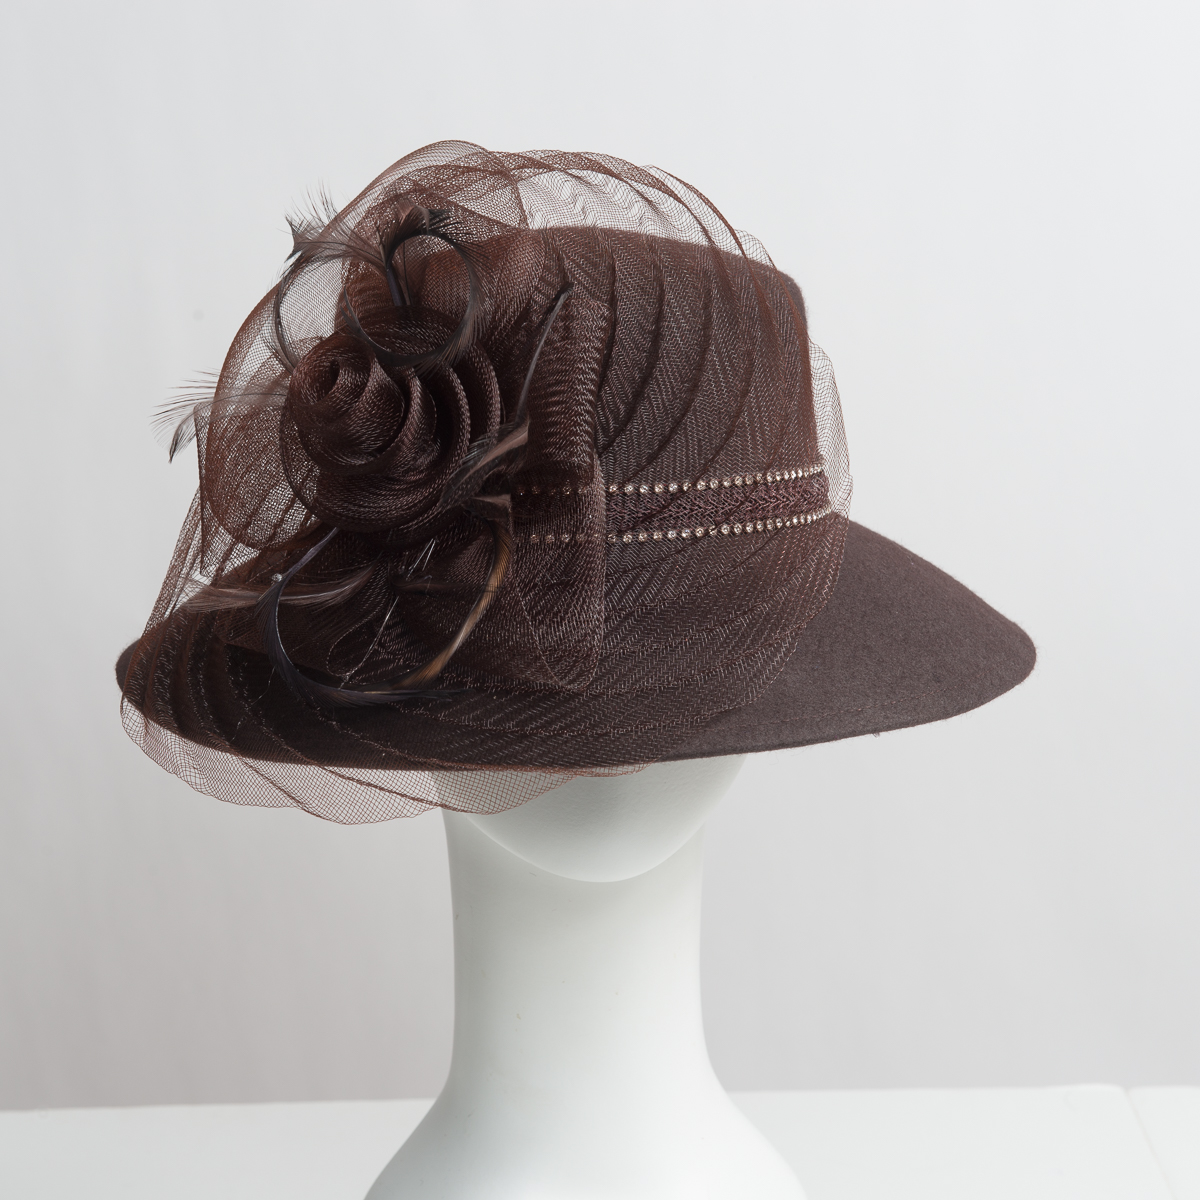 One Pheasant FEATHER PAD Brown//Grey Condor #P80; Headband//Hats//Millinery//Craft